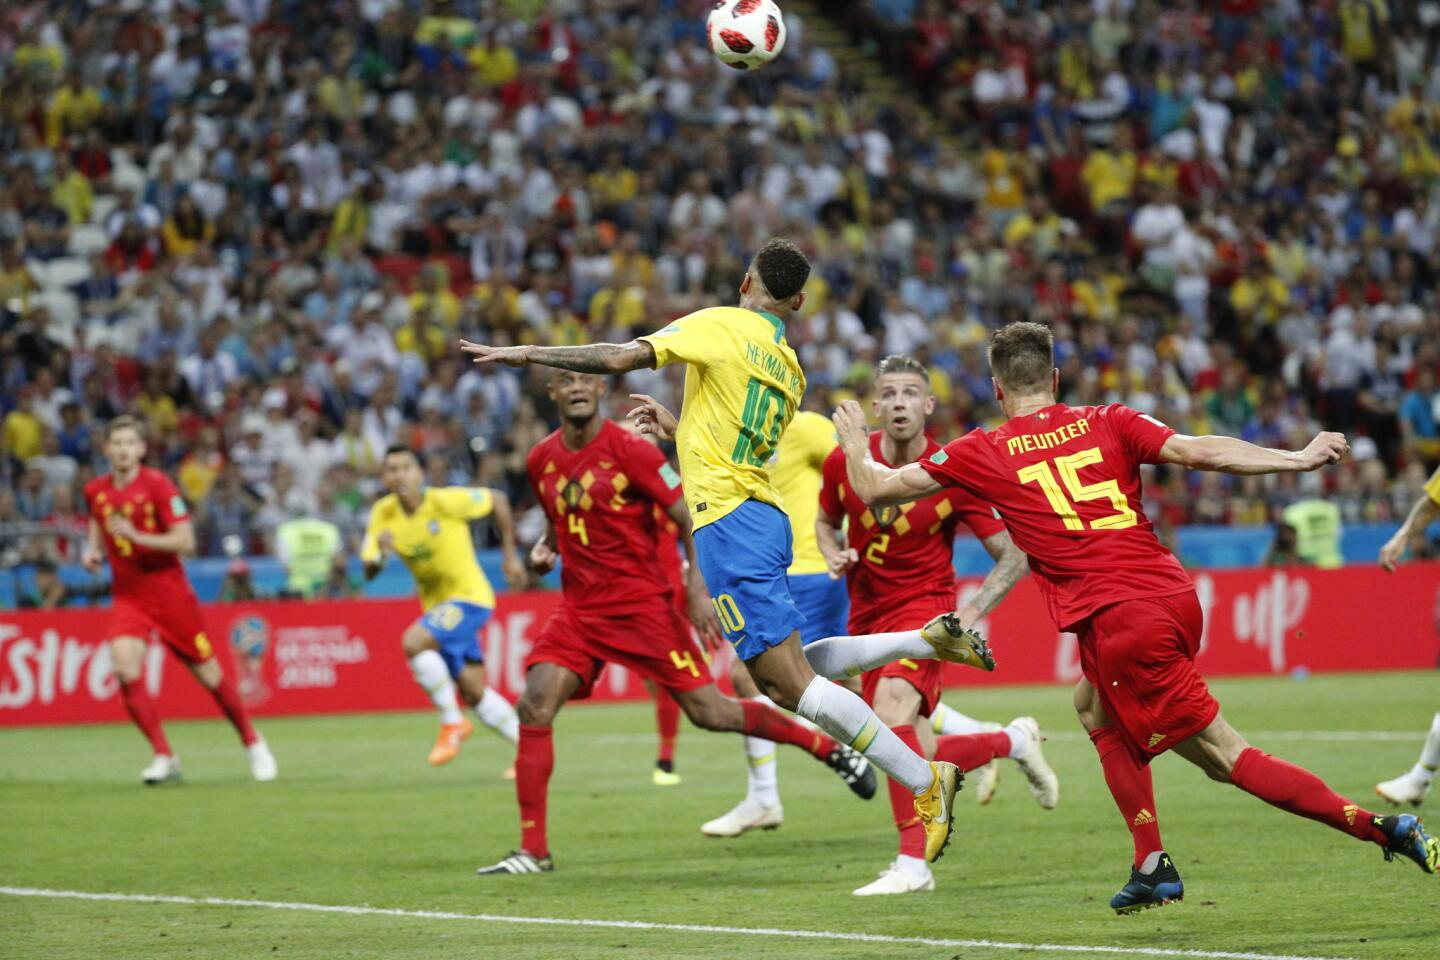 Kazan (Russian Federation), 06/07/2018.- Neymar of Brazil (C) and Thomas Meunier of Belgium (R) in action during the FIFA World Cup 2018 quarter final soccer match between Brazil and Belgium in Kazan, Russia, 06 July 2018. (RESTRICTIONS APPLY: Editorial Use Only, not used in association with any commercial entity - Images must not be used in any form of alert service or push service of any kind including via mobile alert services, downloads to mobile devices or MMS messaging - Images must appear as still images and must not emulate match action video footage - No alteration is made to, and no text or image is superimposed over, any published image which: (a) intentionally obscures or removes a sponsor identification image; or (b) adds or overlays the commercial identification of any third party which is not officially associated with the FIFA World Cup) (Mundial de Fútbol, Bélgica, Brasil, Rusia) EFE/EPA/SERGEY DOLZHENKO EDITORIAL USE ONLY ** Usable by HOY and SD Only **